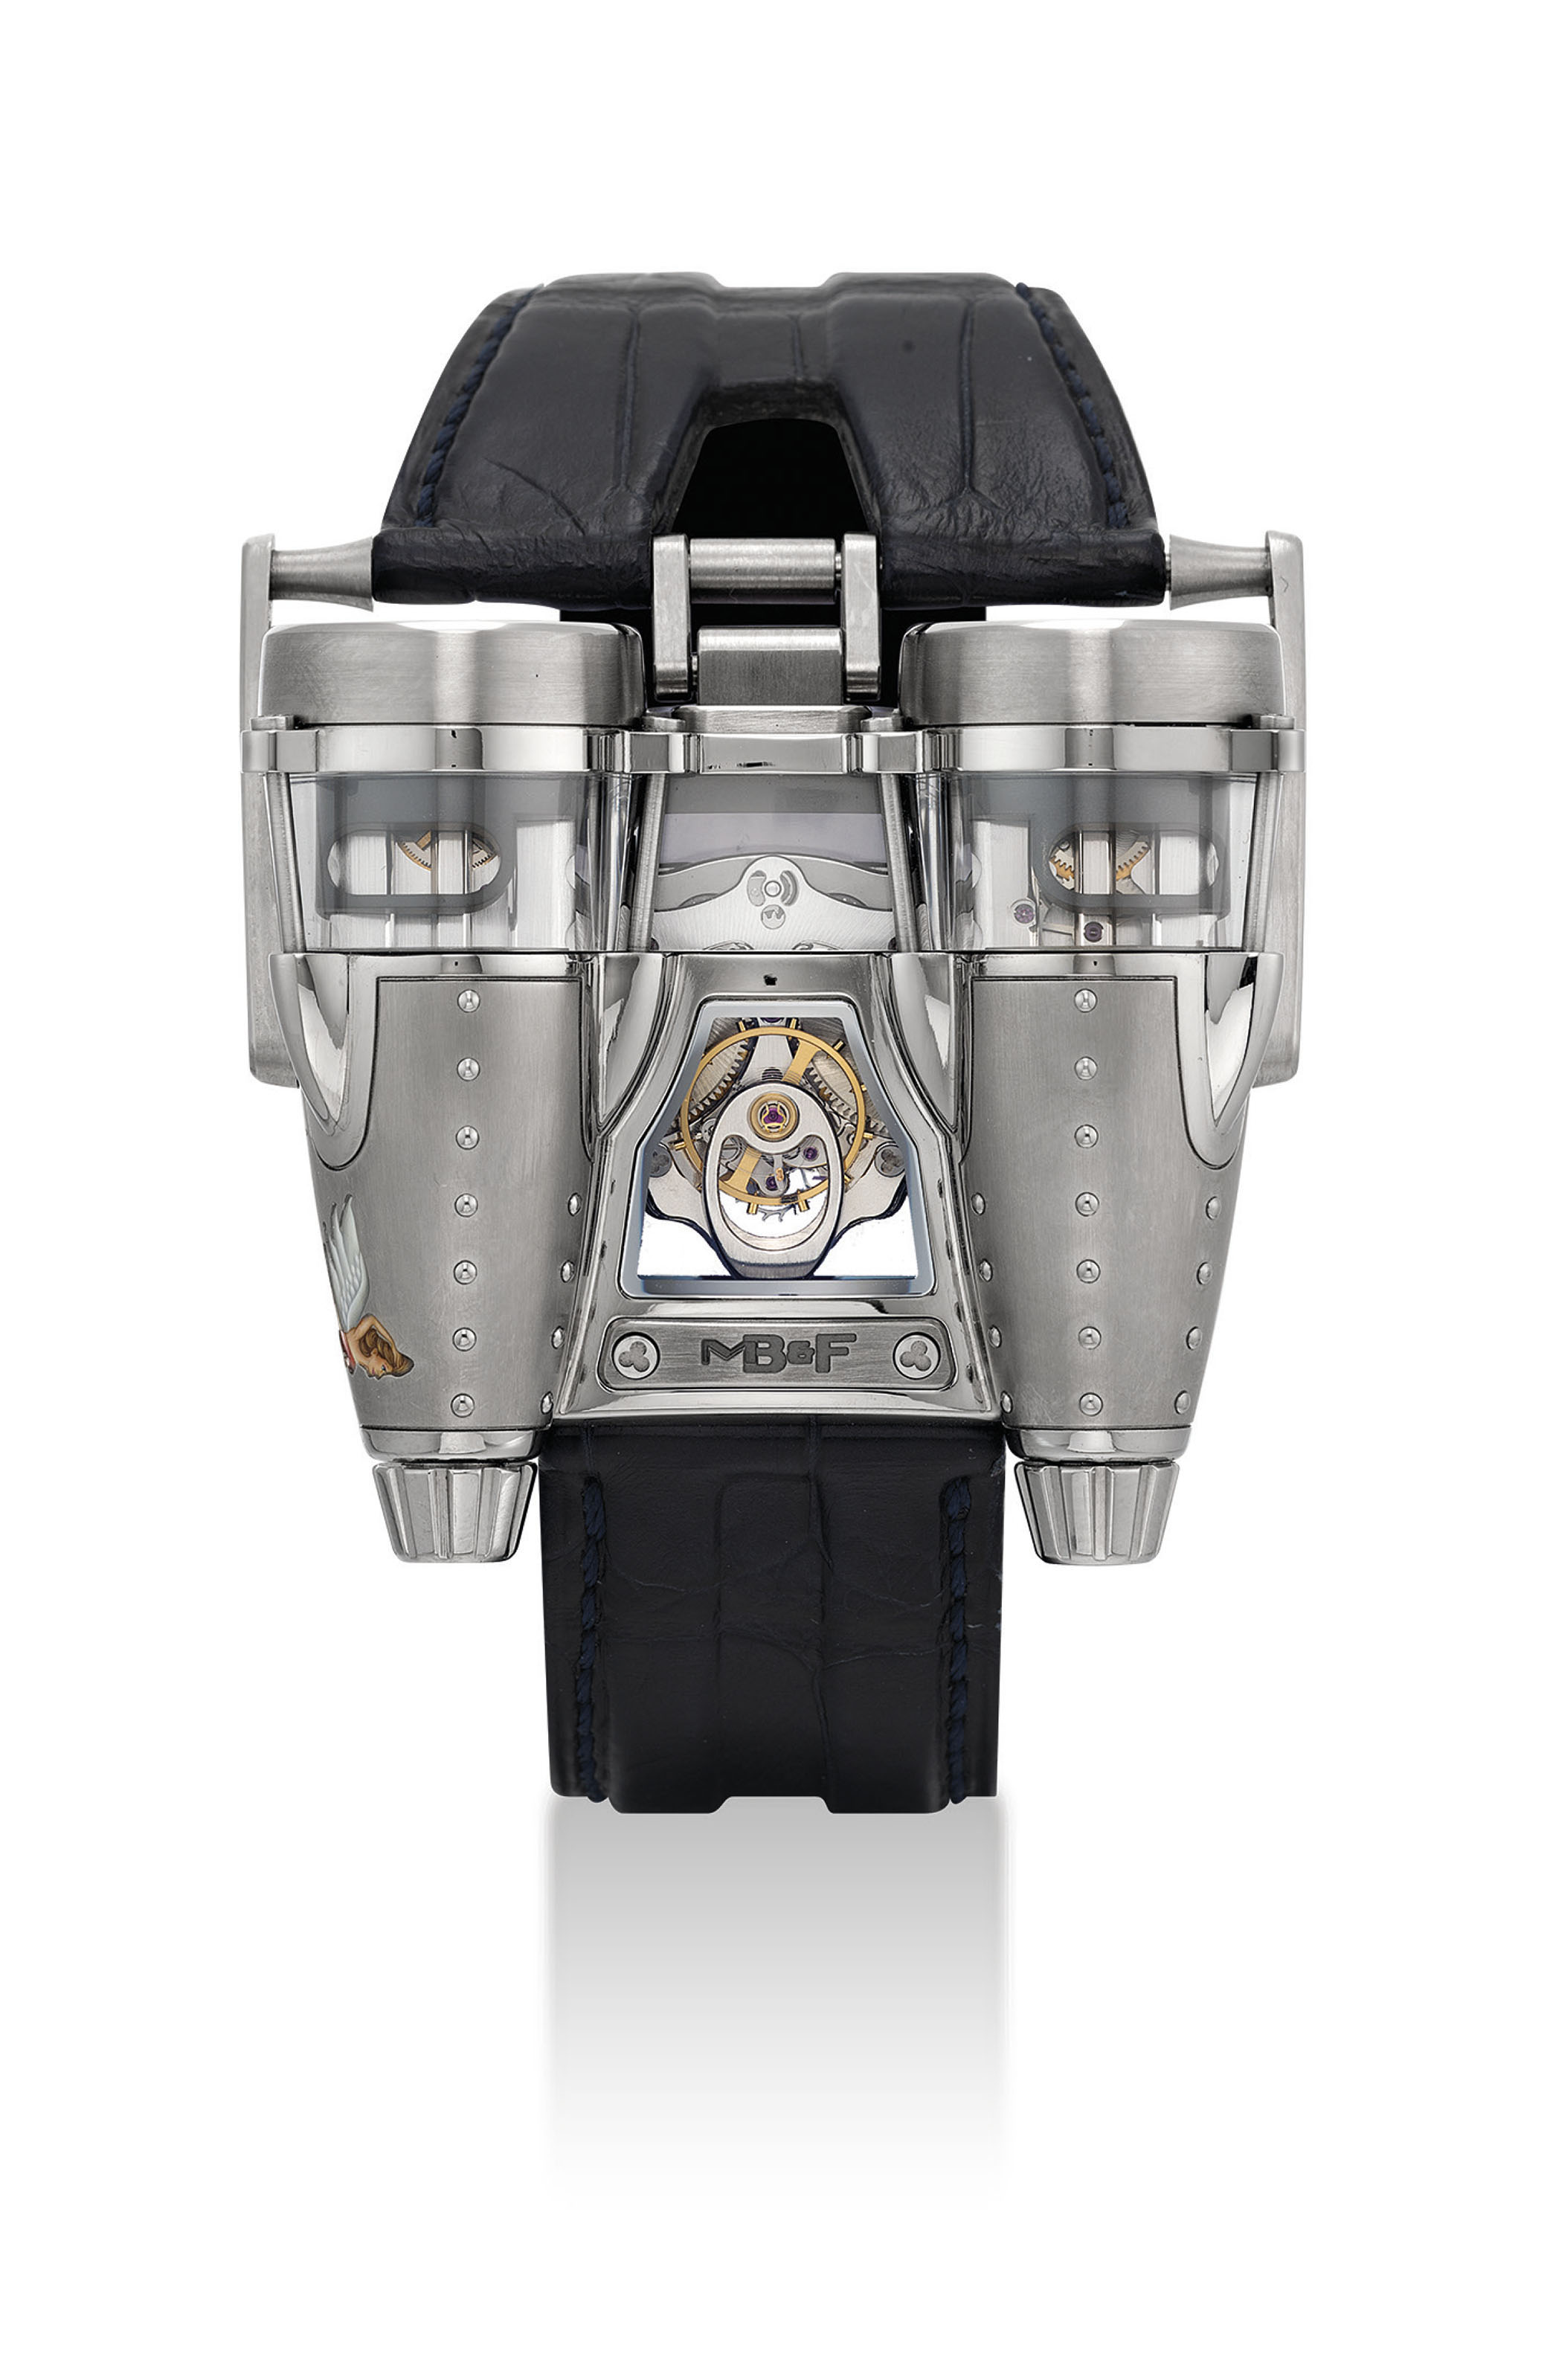 MB&F. A VERY FINE AND EXTREMELY RARE TITANIUM LIMITED EDITION AVIATION-INSPIRED WRISTWATCH